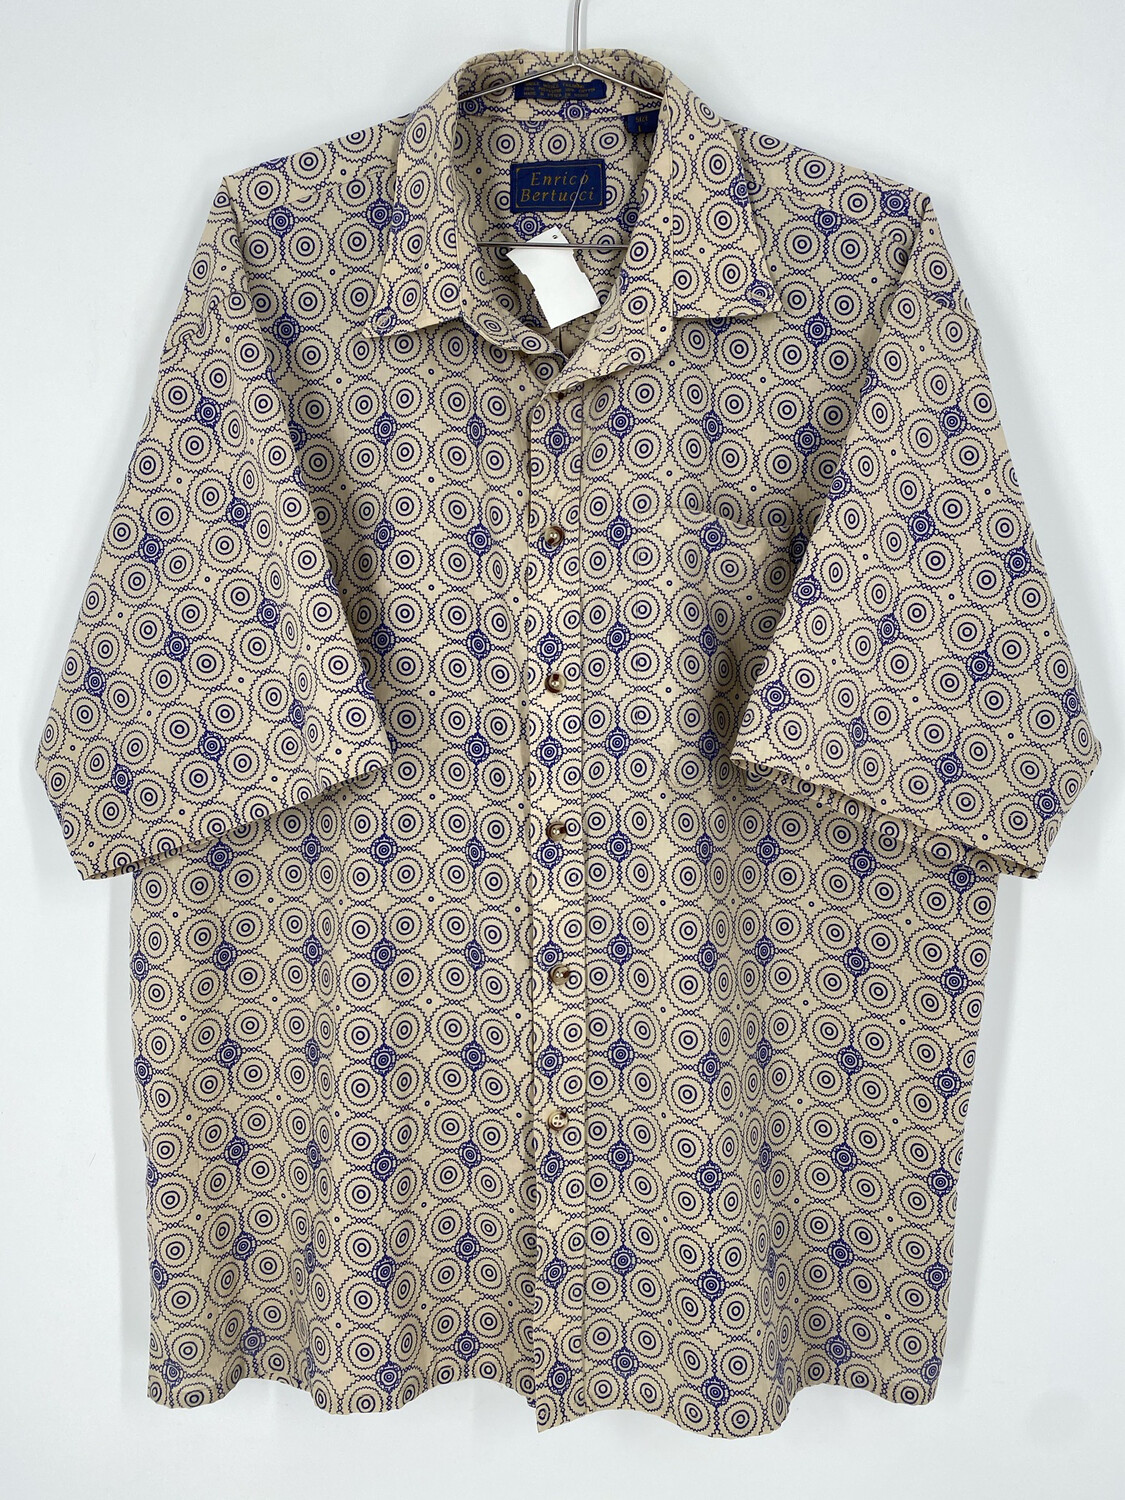 Enrico Bertucci Abstract Retro Short Sleeve Button Up Size L